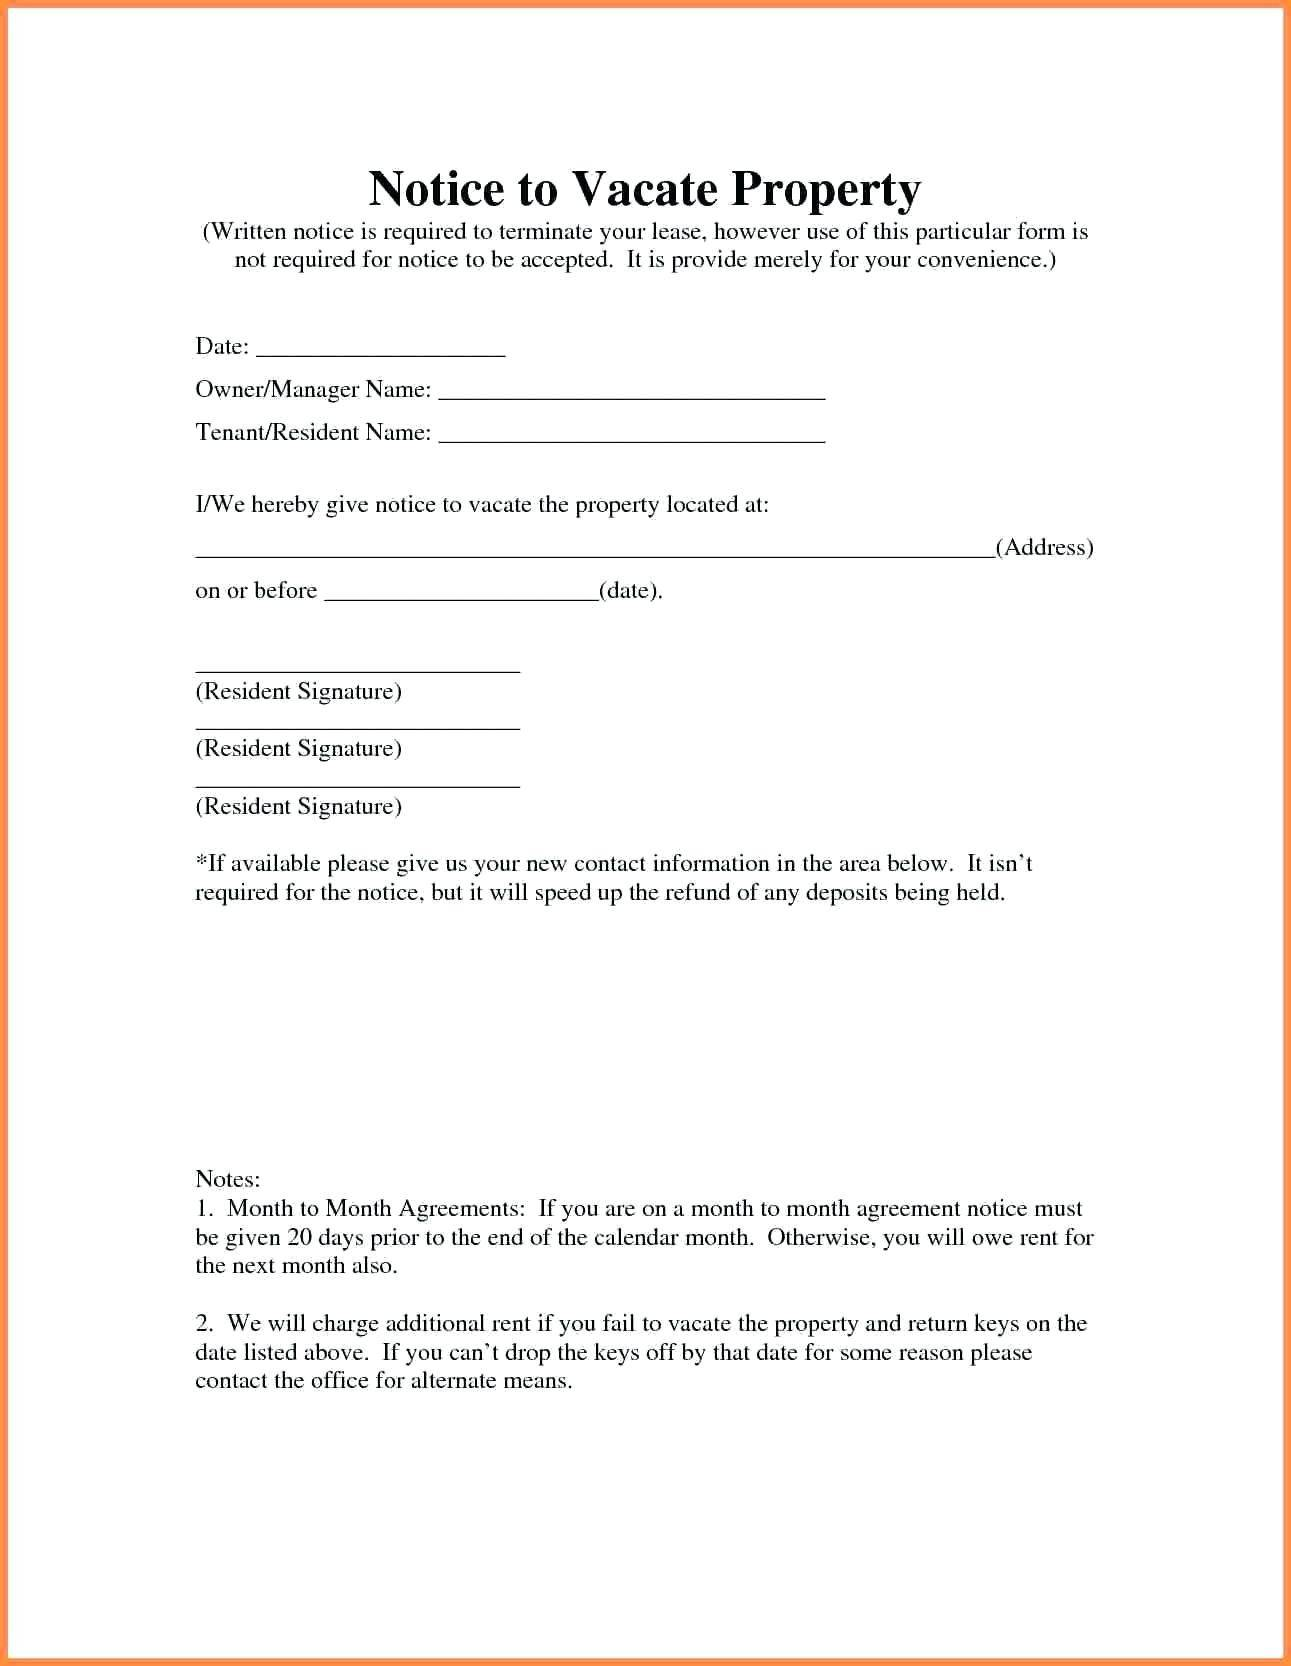 Template For Notice To Vacate